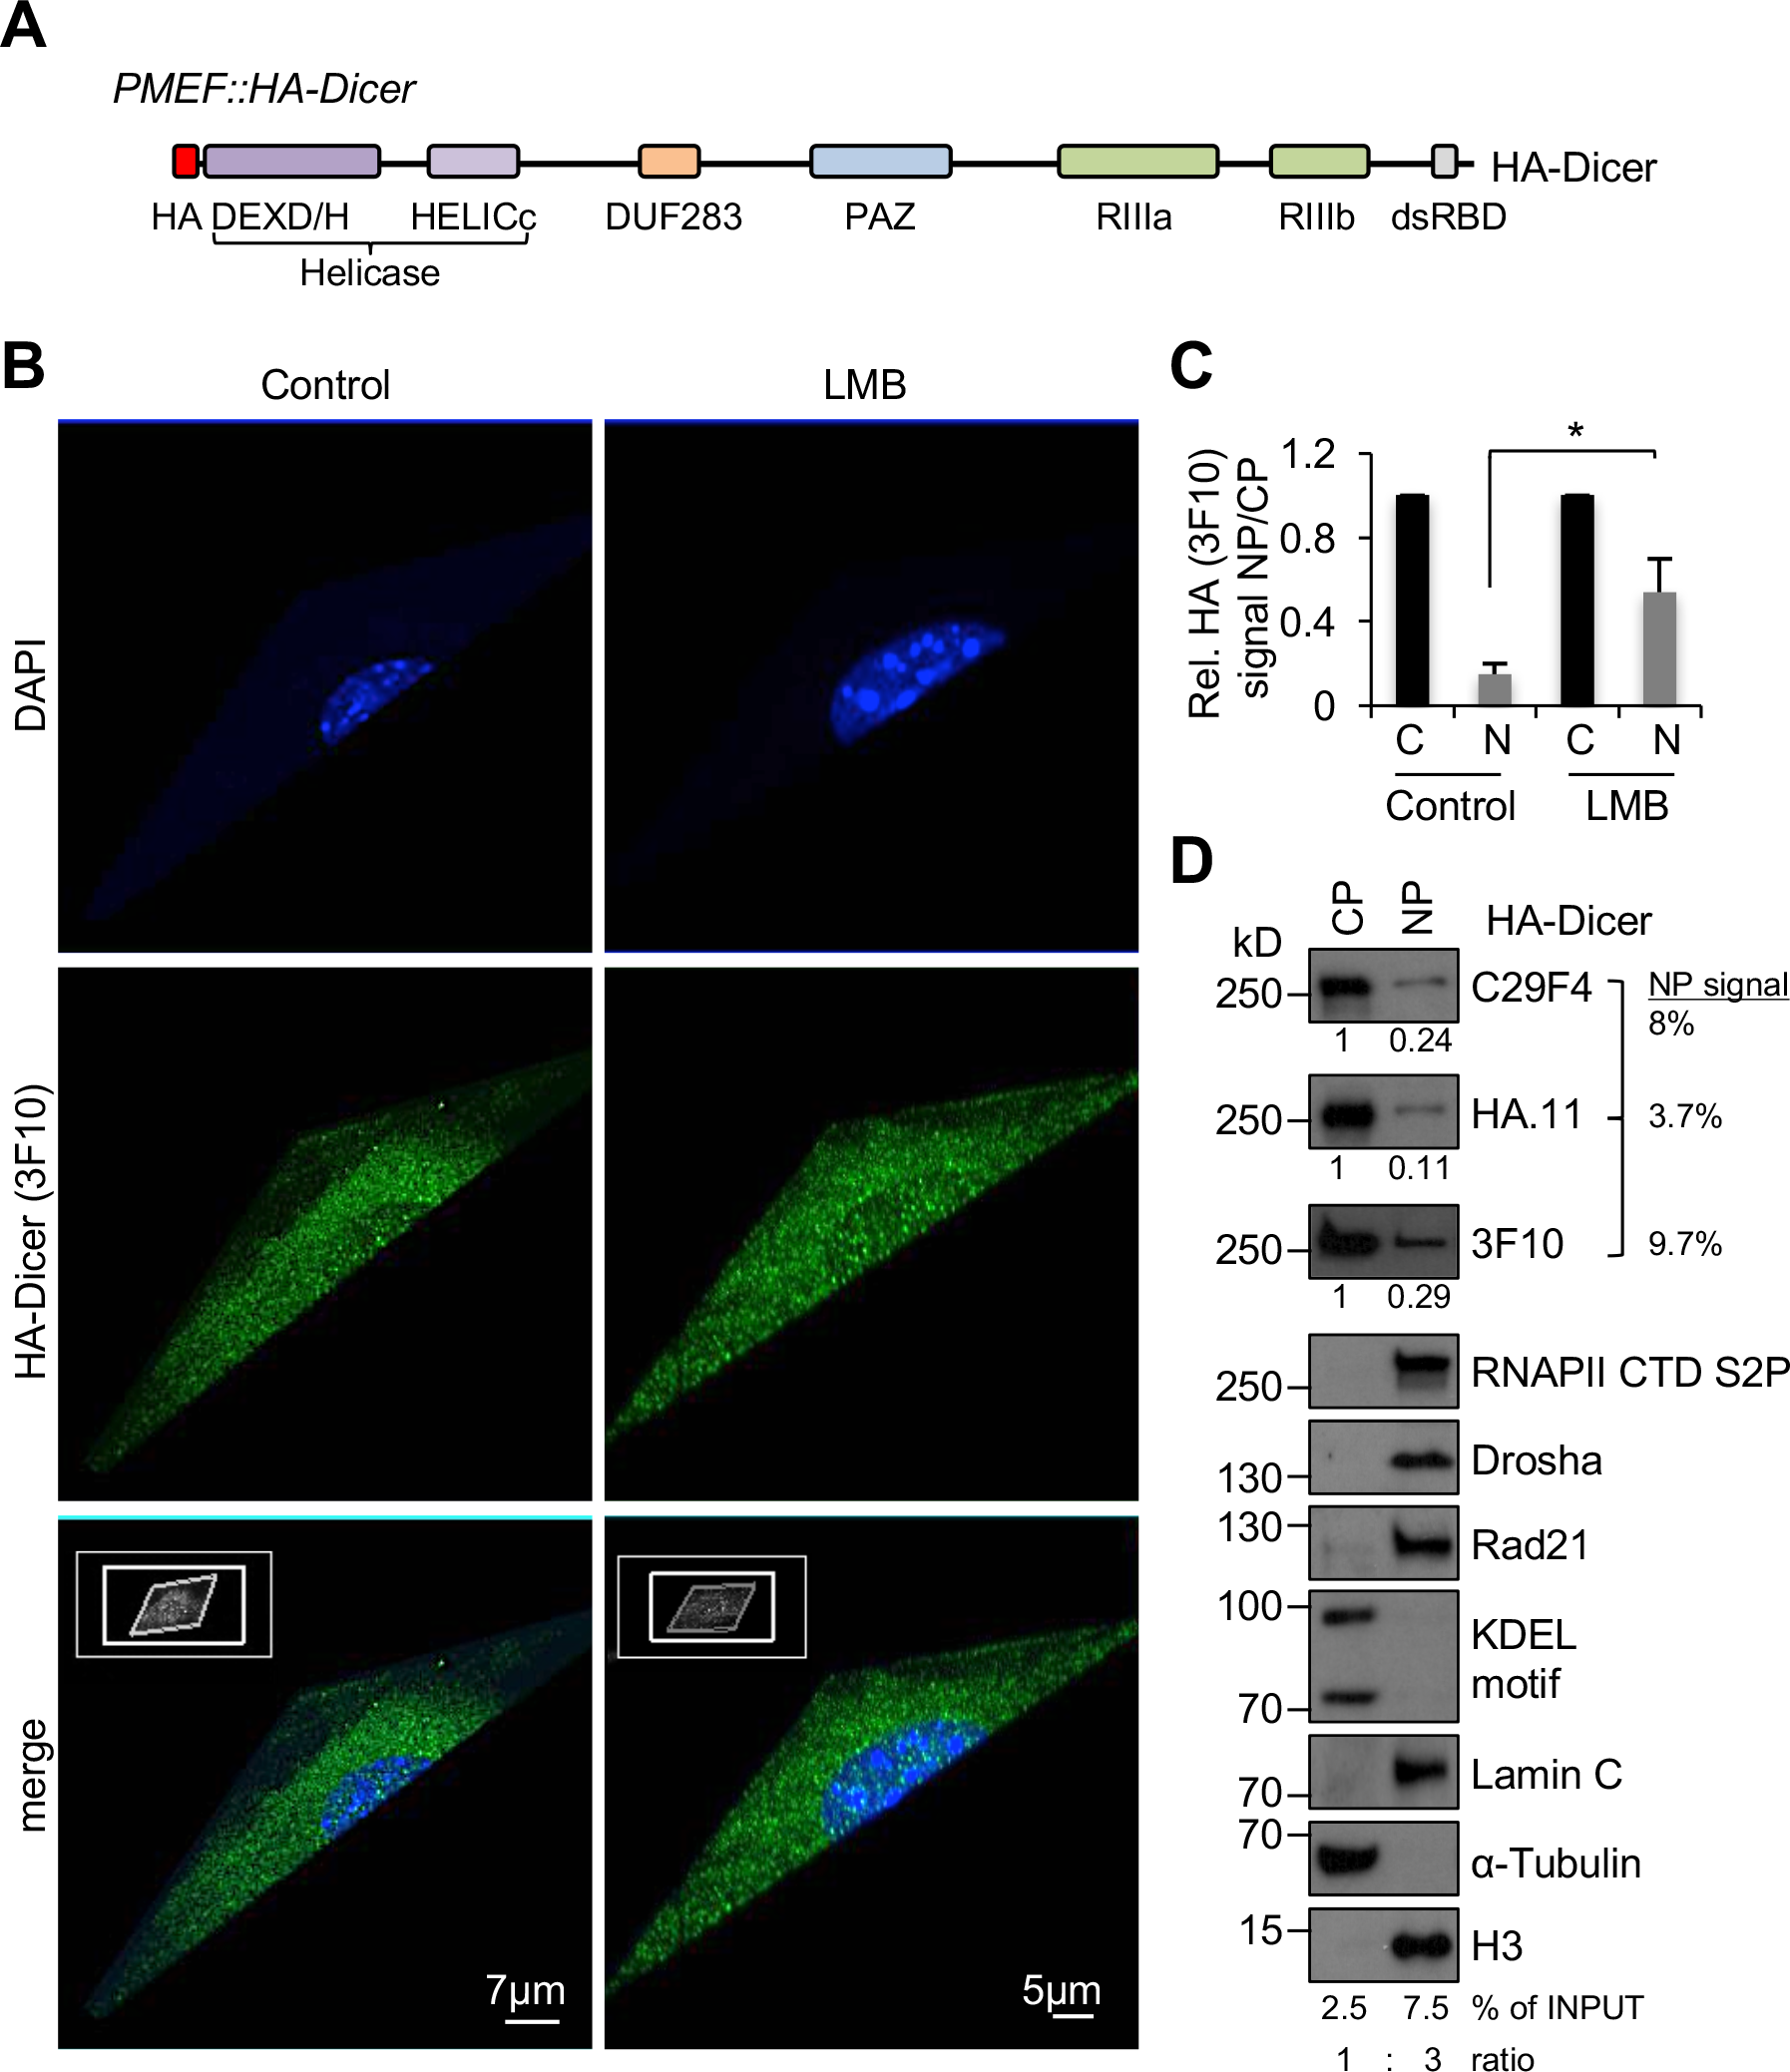 Subcellular localisation of HA-Dicer in murine PMEF::HA-Dicer cells.